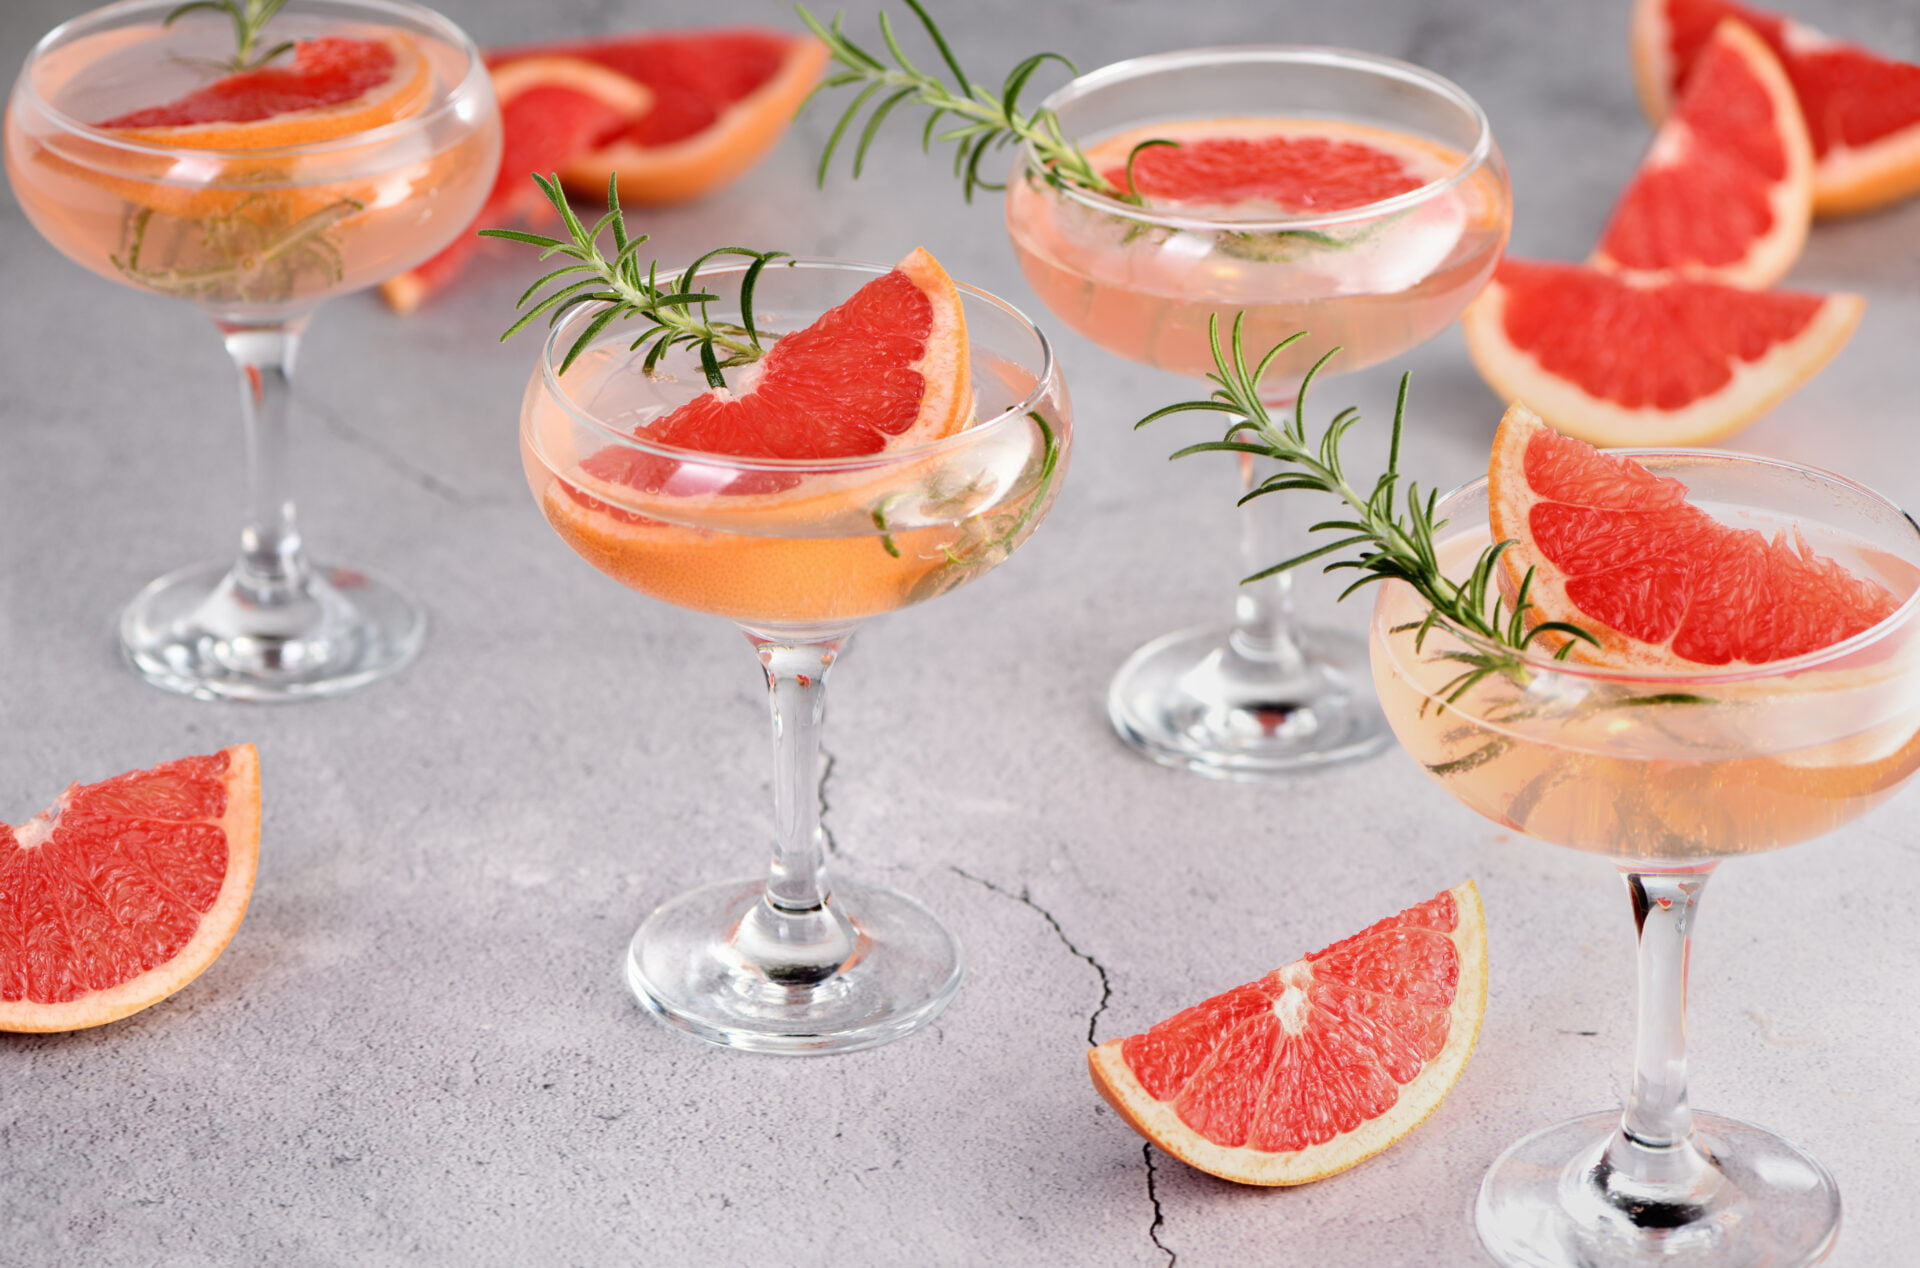 Goblet of sparkling wine with a slice of grapefruit